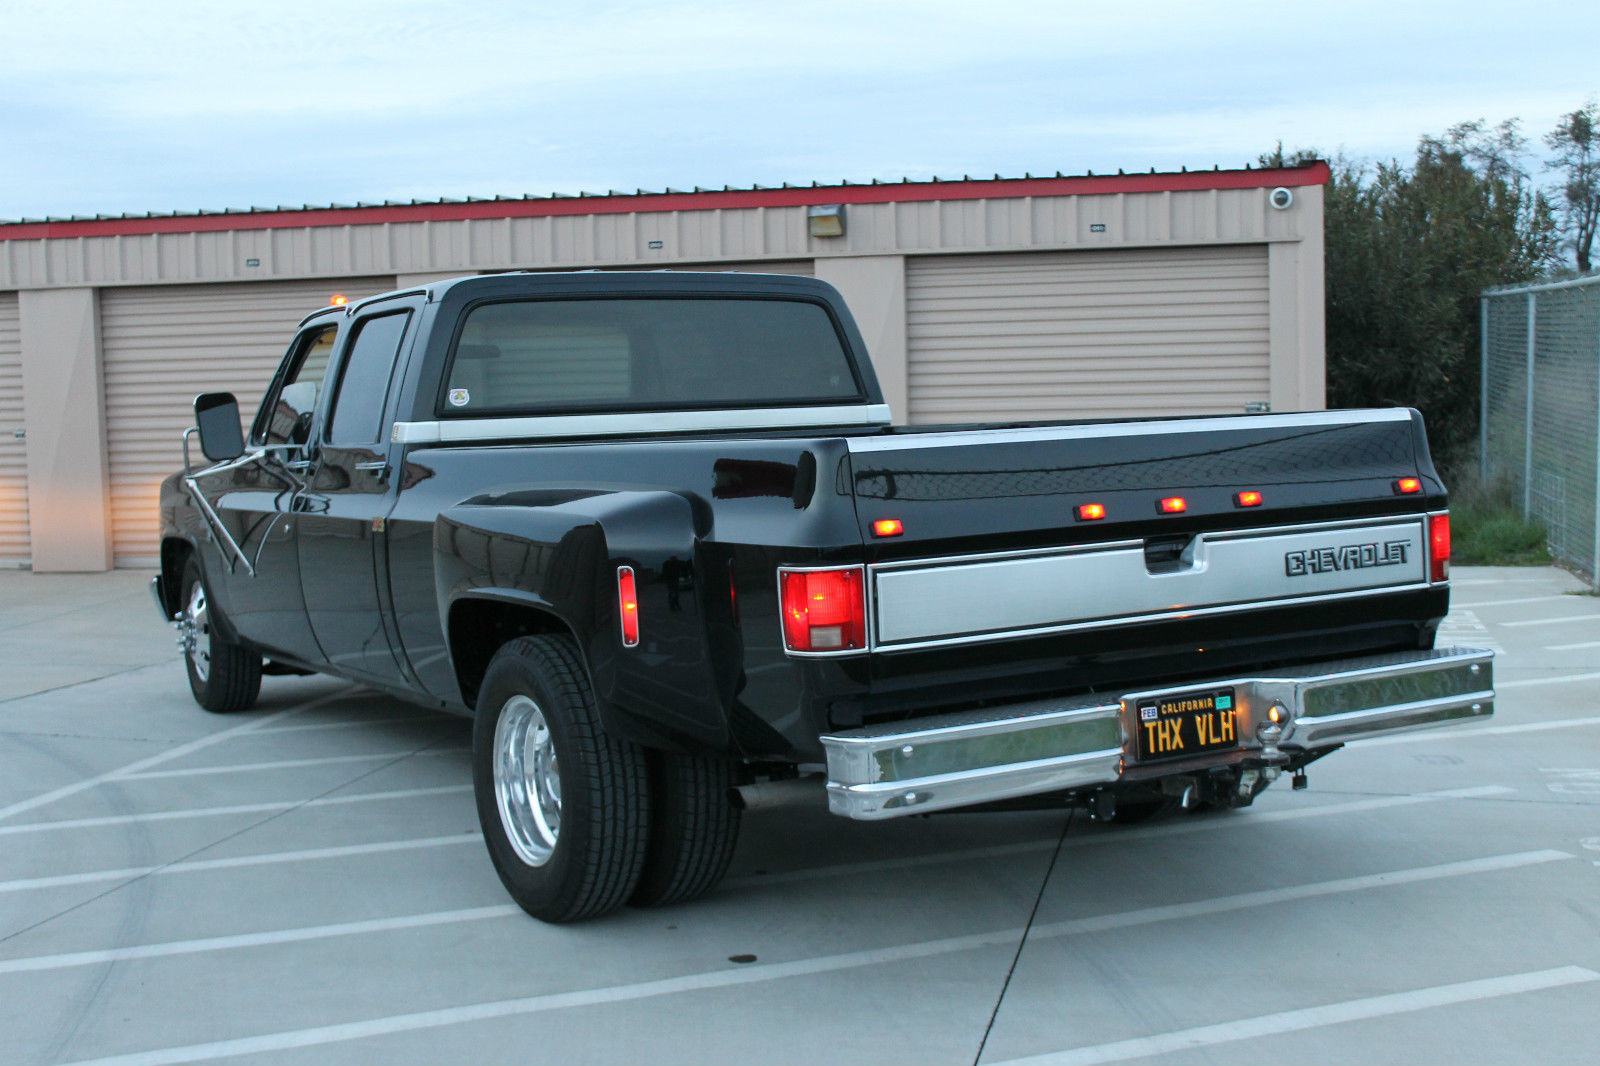 Tow Rig, Spare Truck Or Just A Clean Big-Block Cruiser…This 1984 Chevrolet C-30 3+3 Can Do It All!